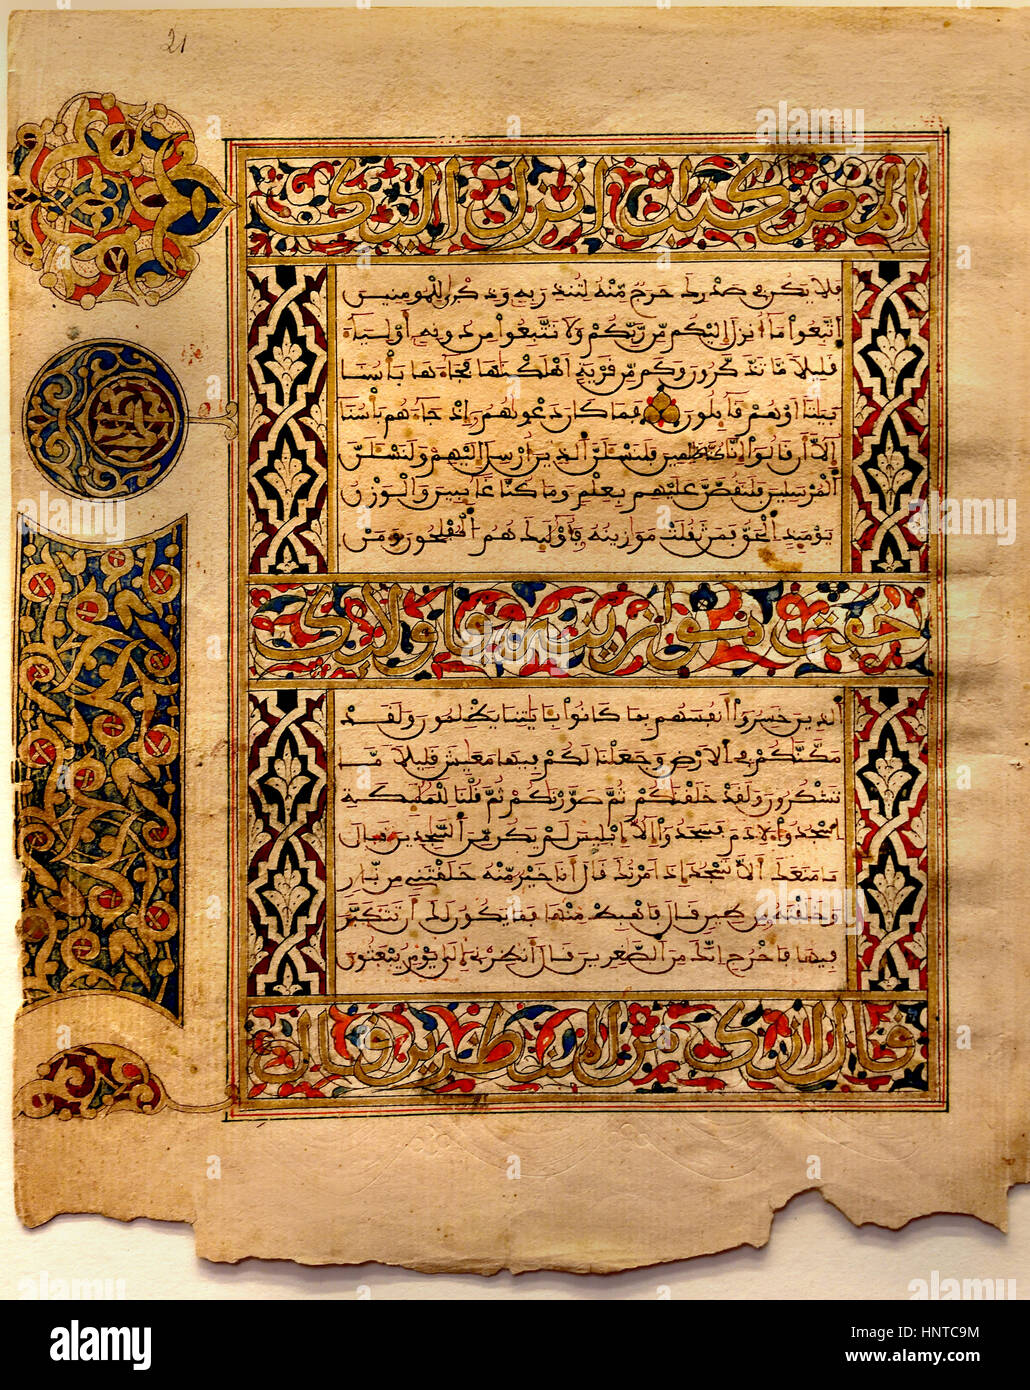 The decorative patterns in the ( Oppenheim Quran ) can also be found in the Alhambra, Fez, Marrakesh, Morocco - Stock Image